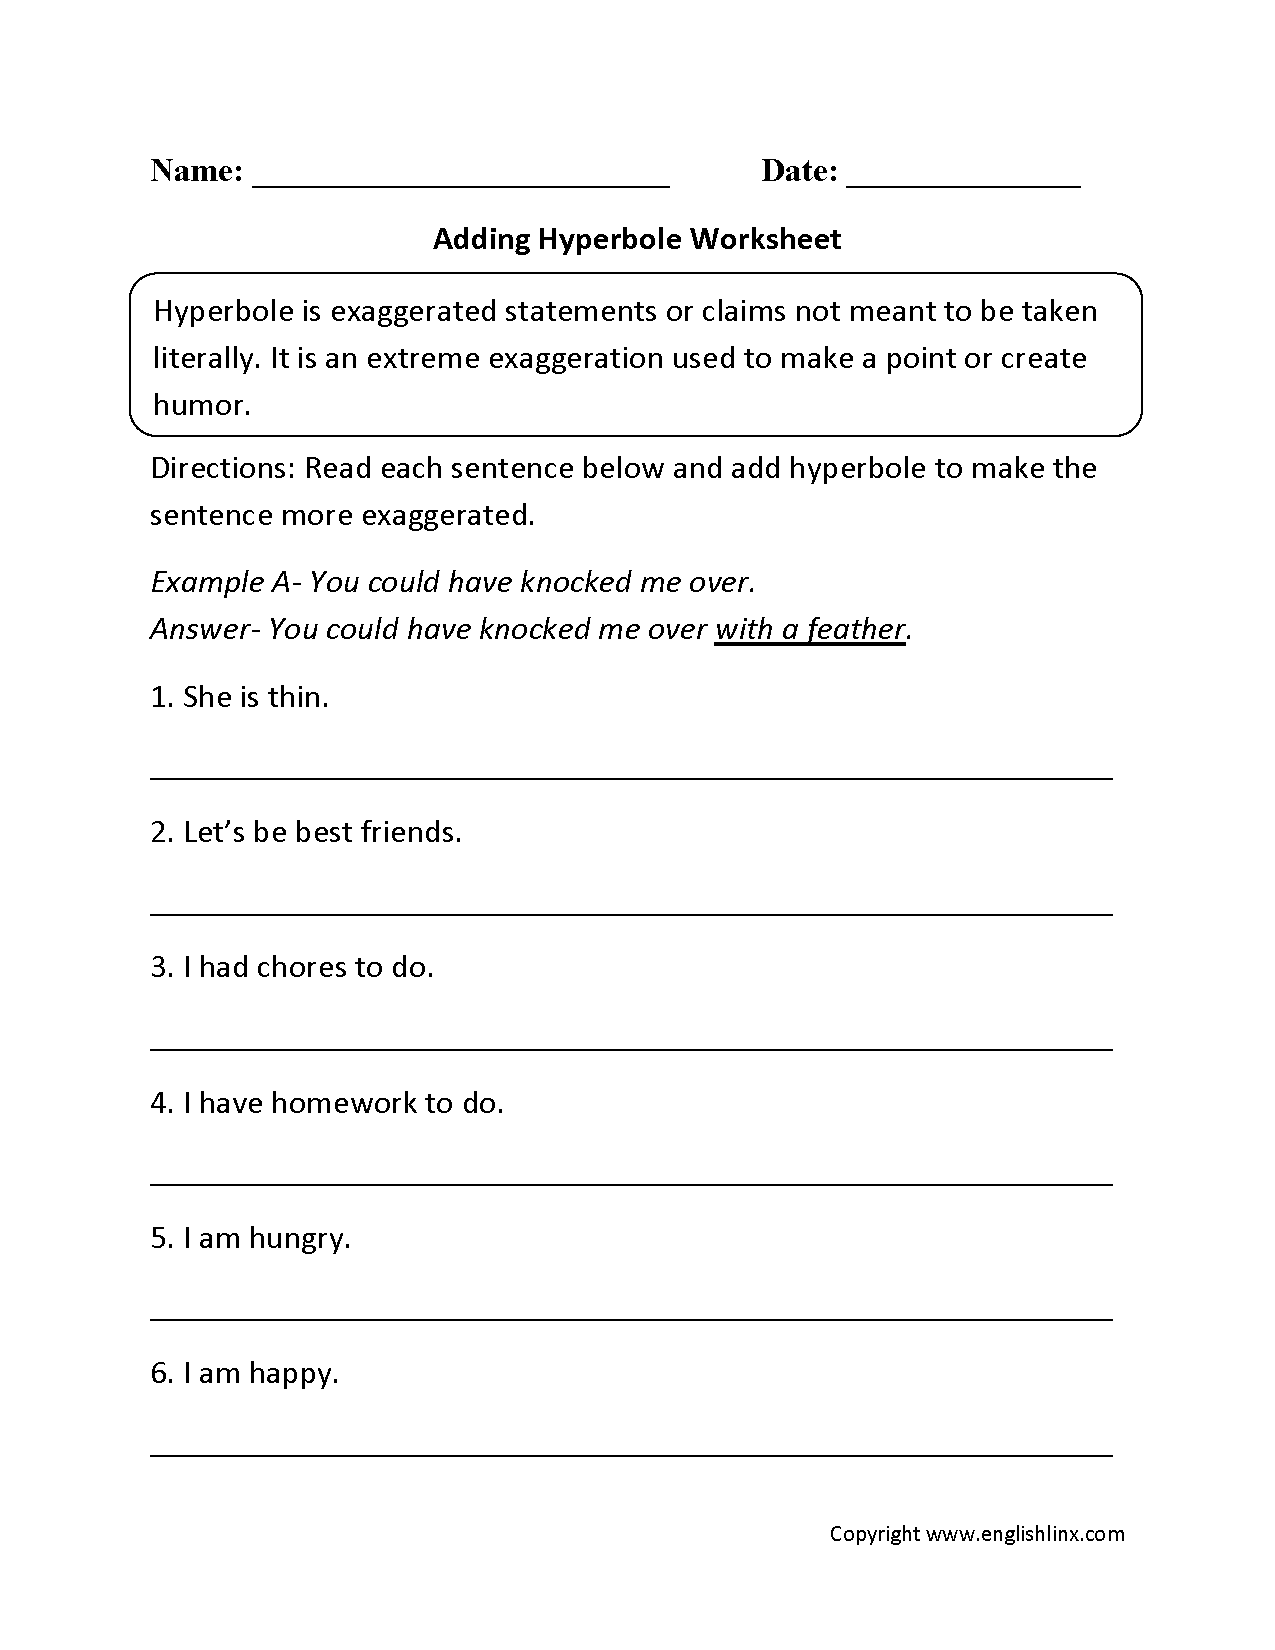 Printables Hyperbole Worksheets figurative language worksheets hyperbole adding worksheet